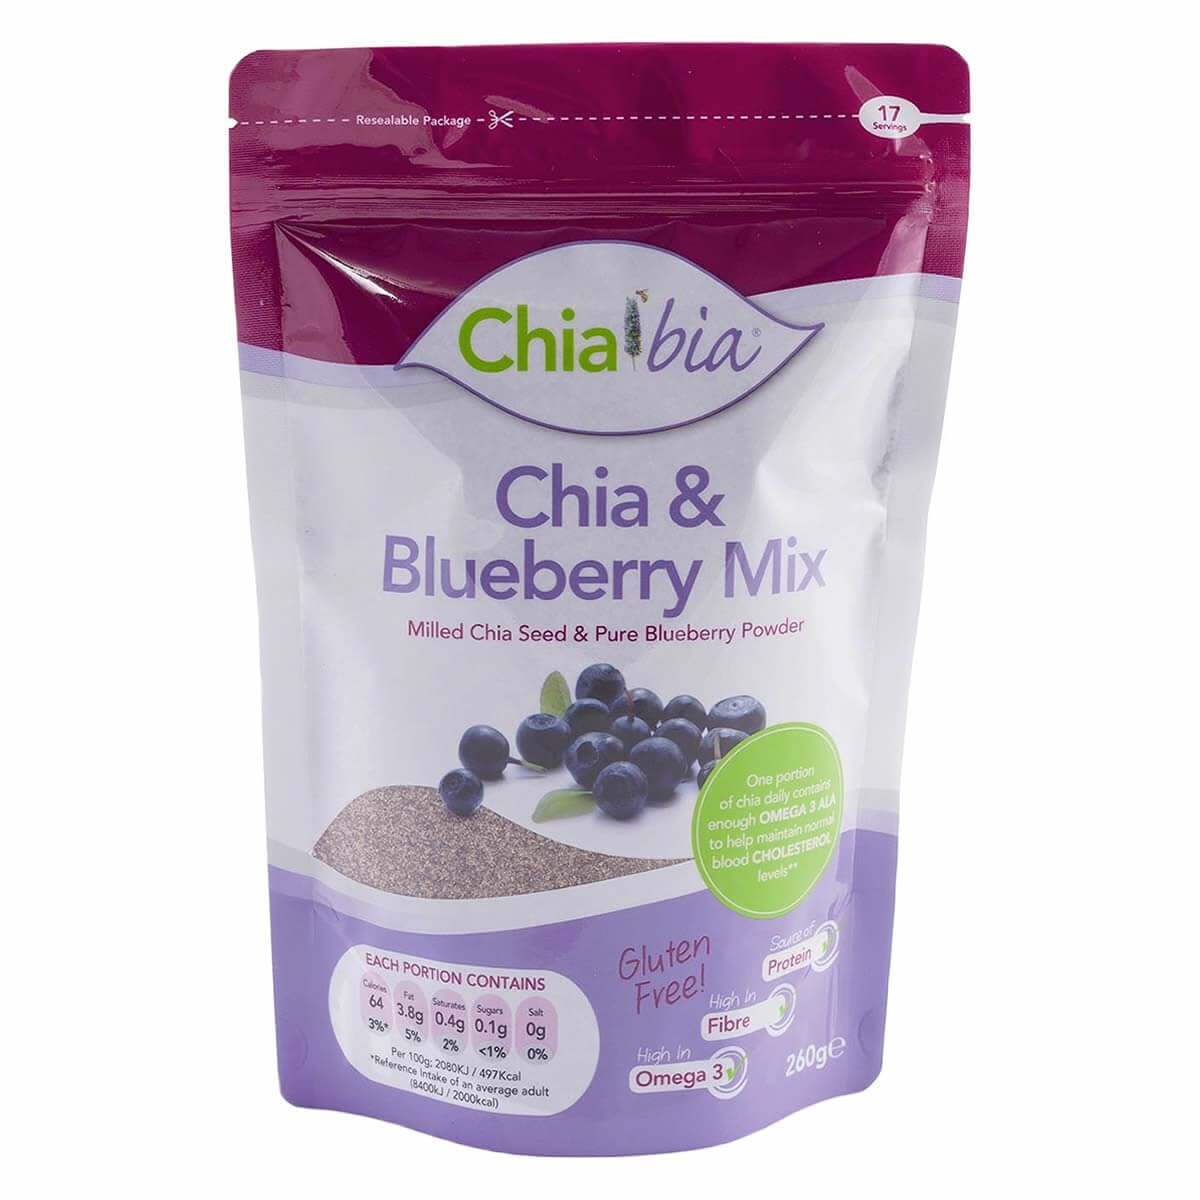 Chia Bia Chia & Blueberry Mix 100g